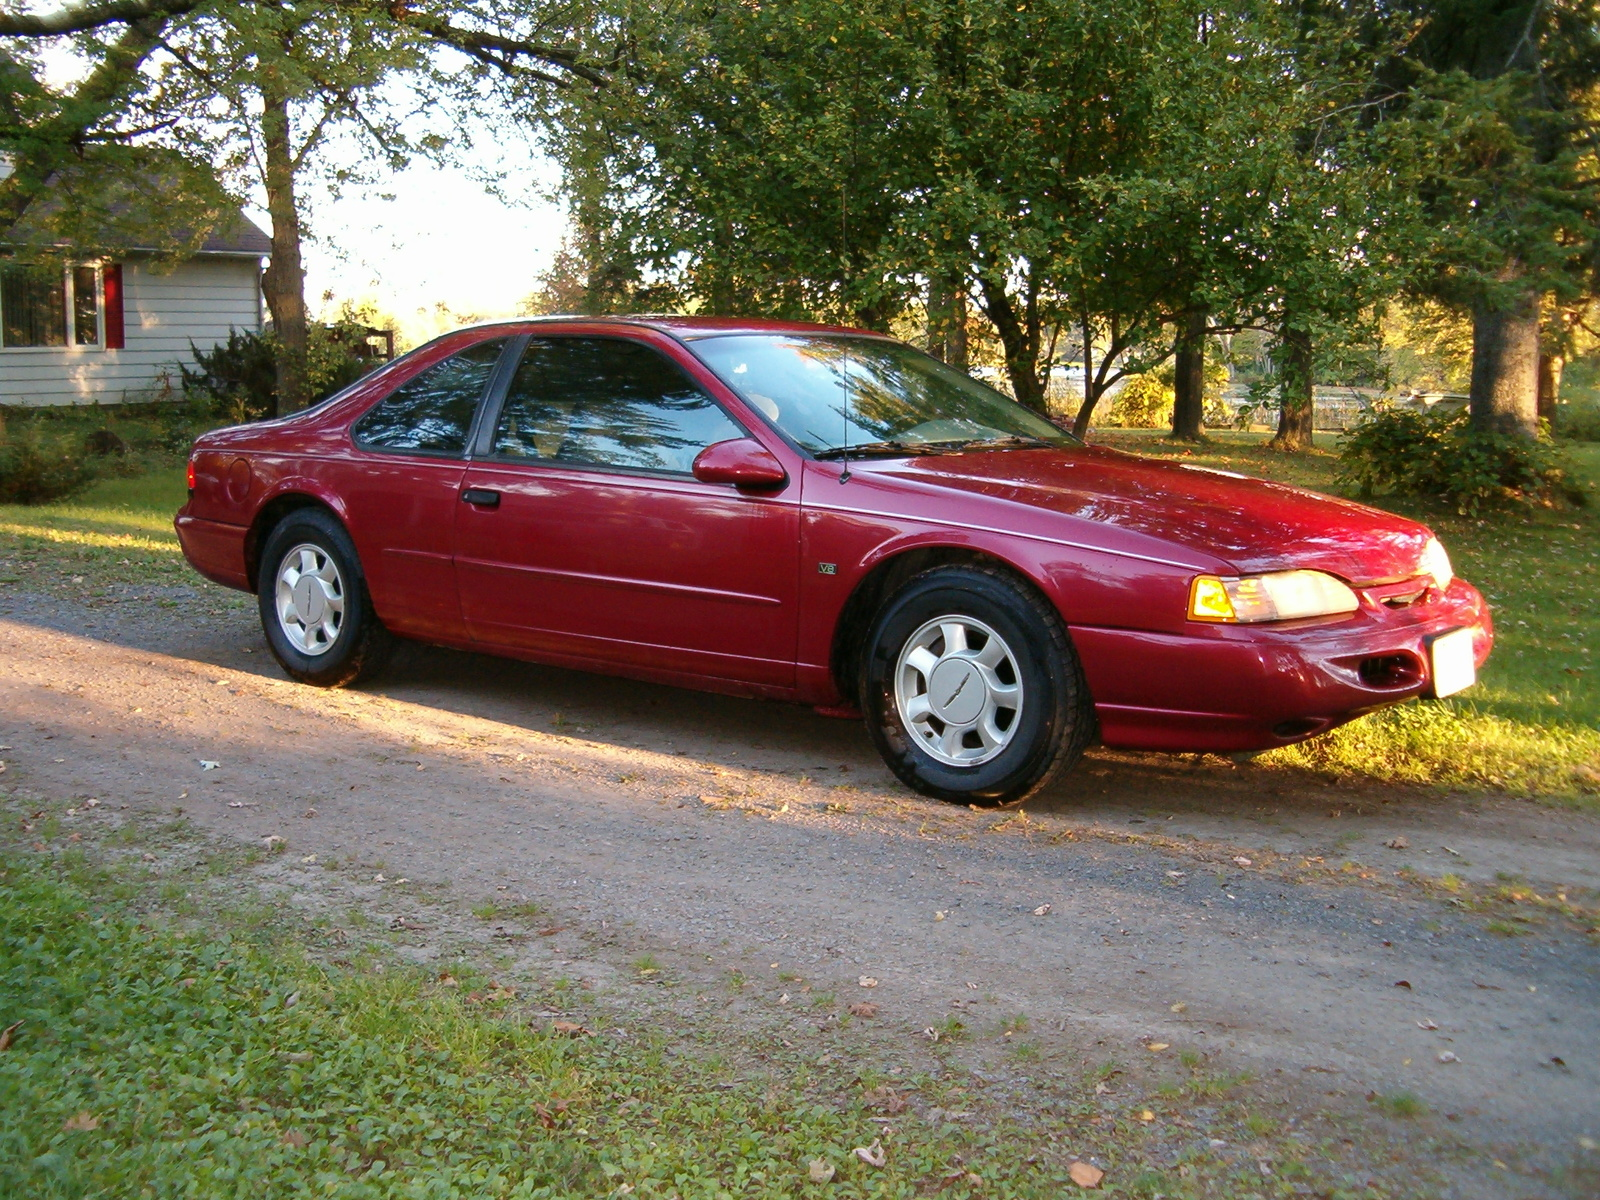 1994 ford thunderbird pictures to pin on pinterest pinsdaddy. Black Bedroom Furniture Sets. Home Design Ideas